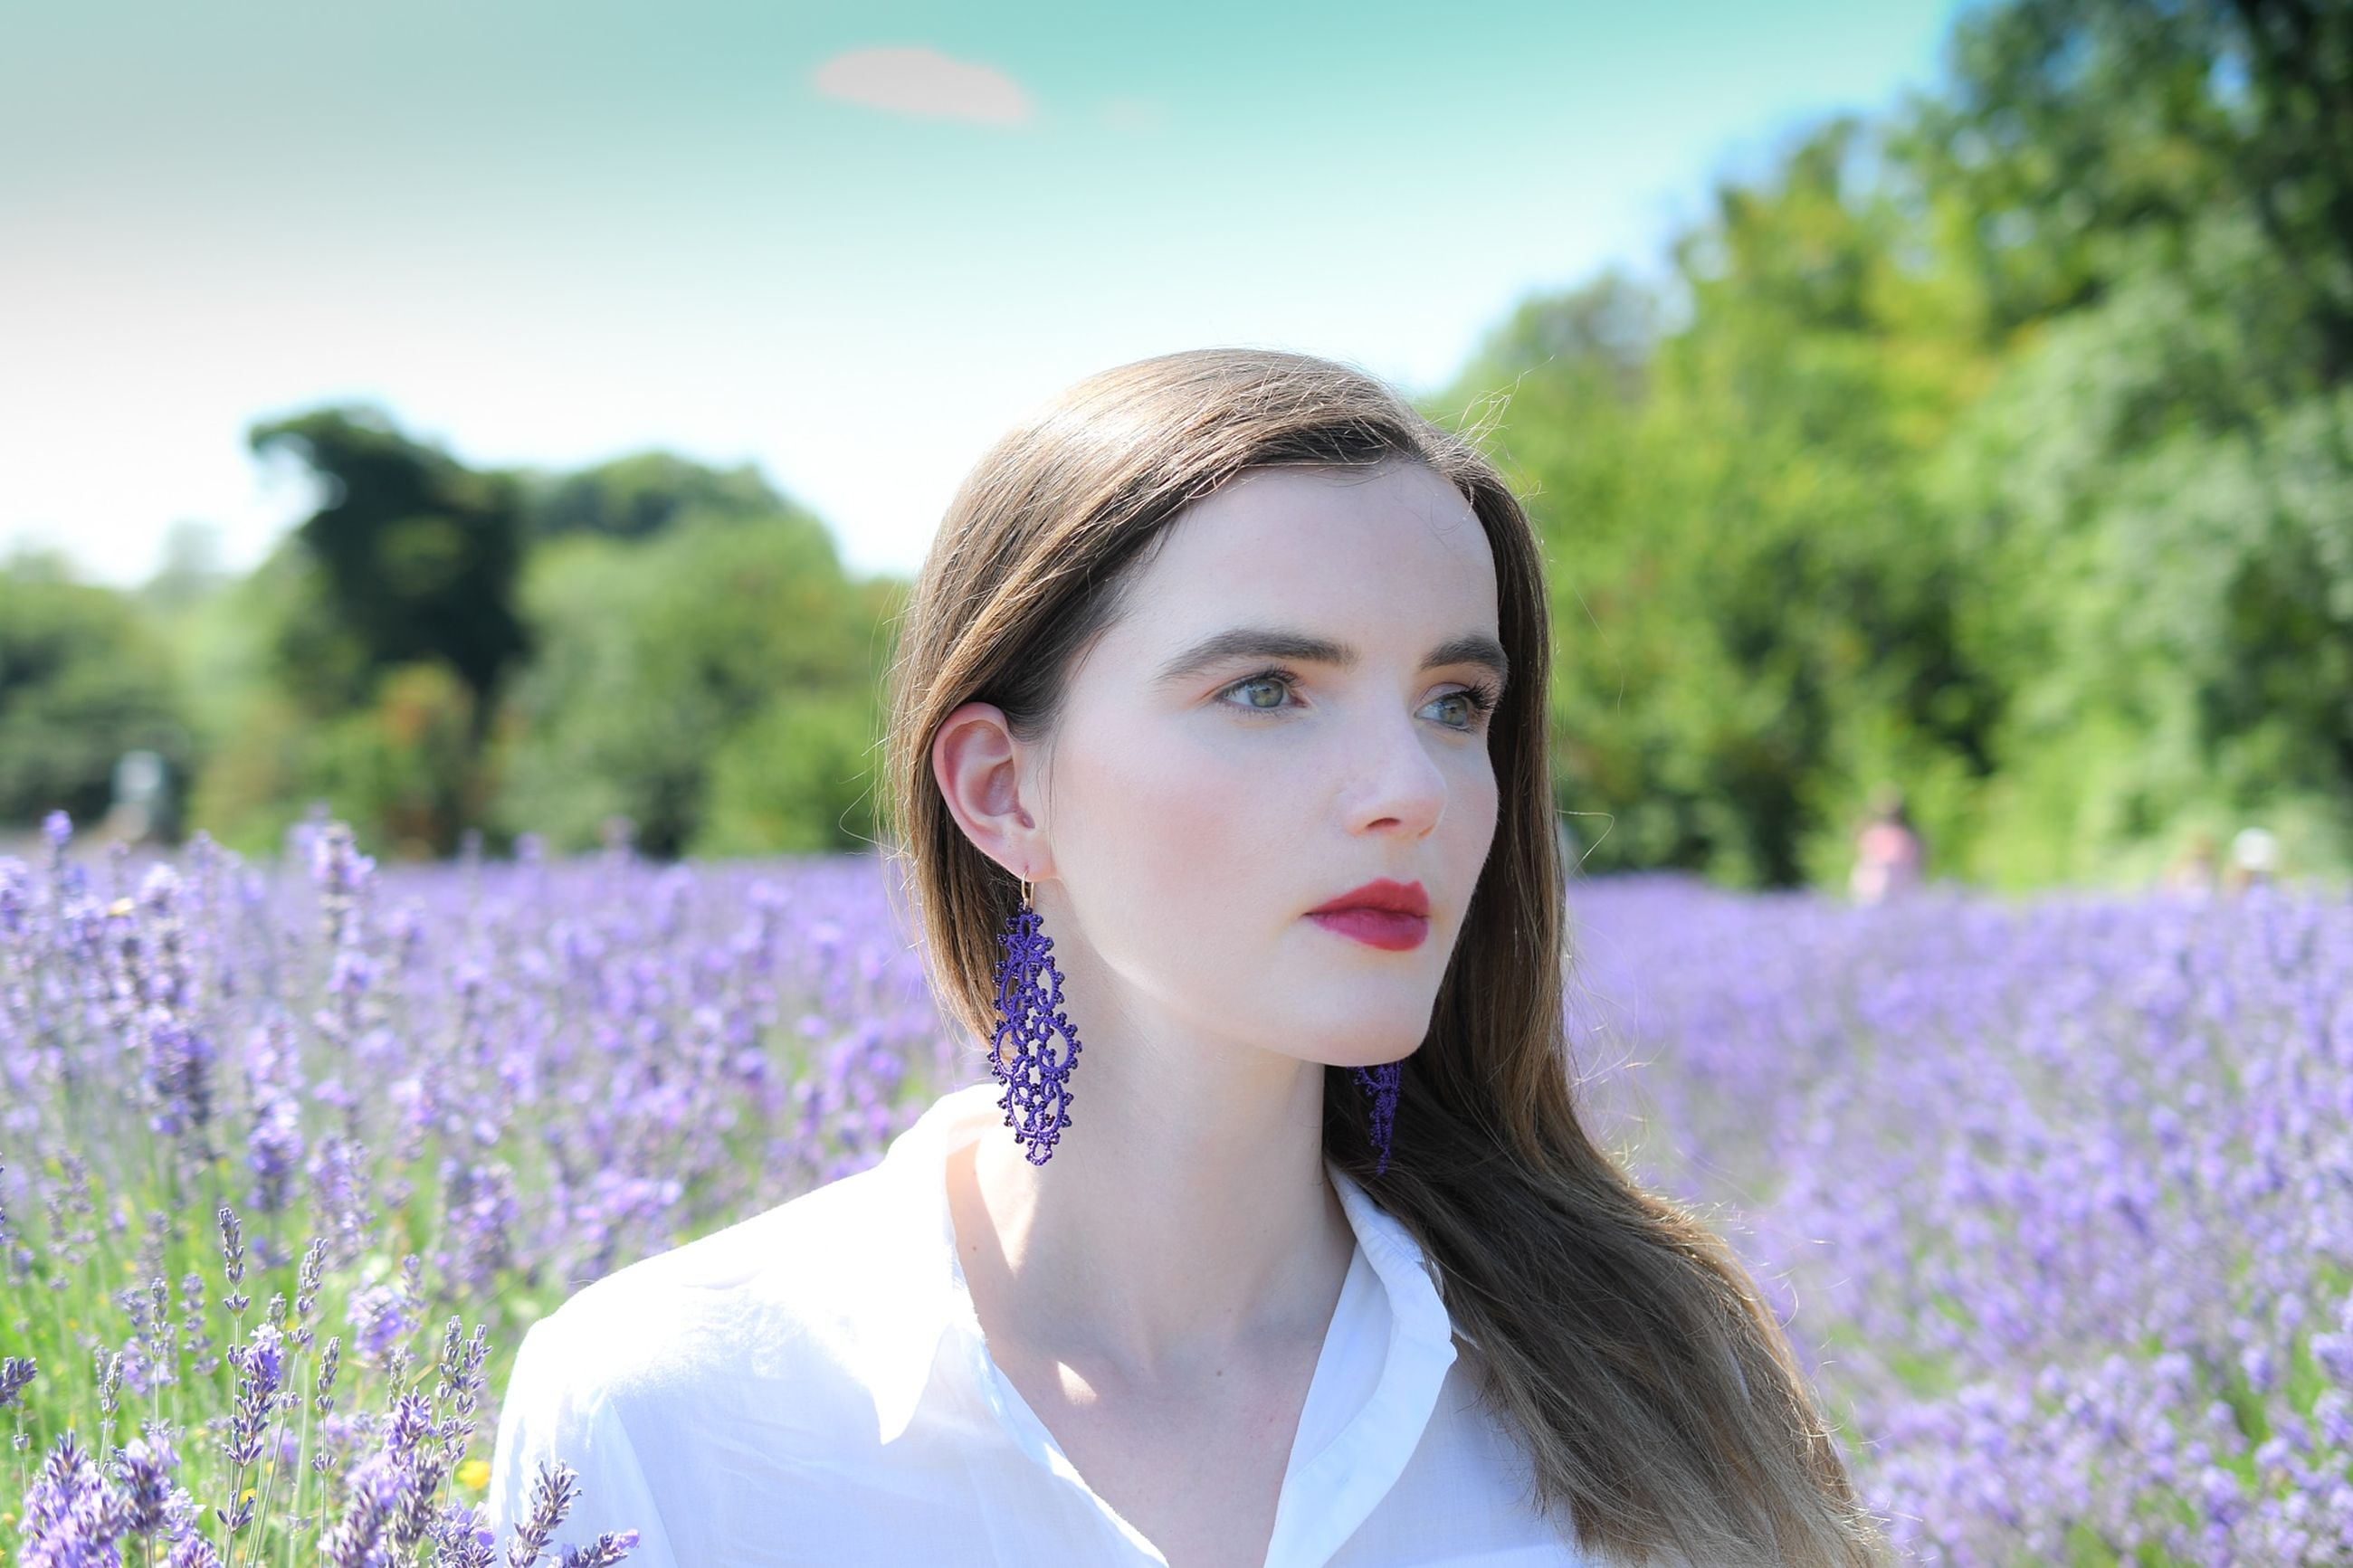 young adult, young women, plant, portrait, flower, one person, real people, flowering plant, field, headshot, lifestyles, front view, hairstyle, nature, leisure activity, growth, beauty, land, long hair, beautiful woman, hair, purple, outdoors